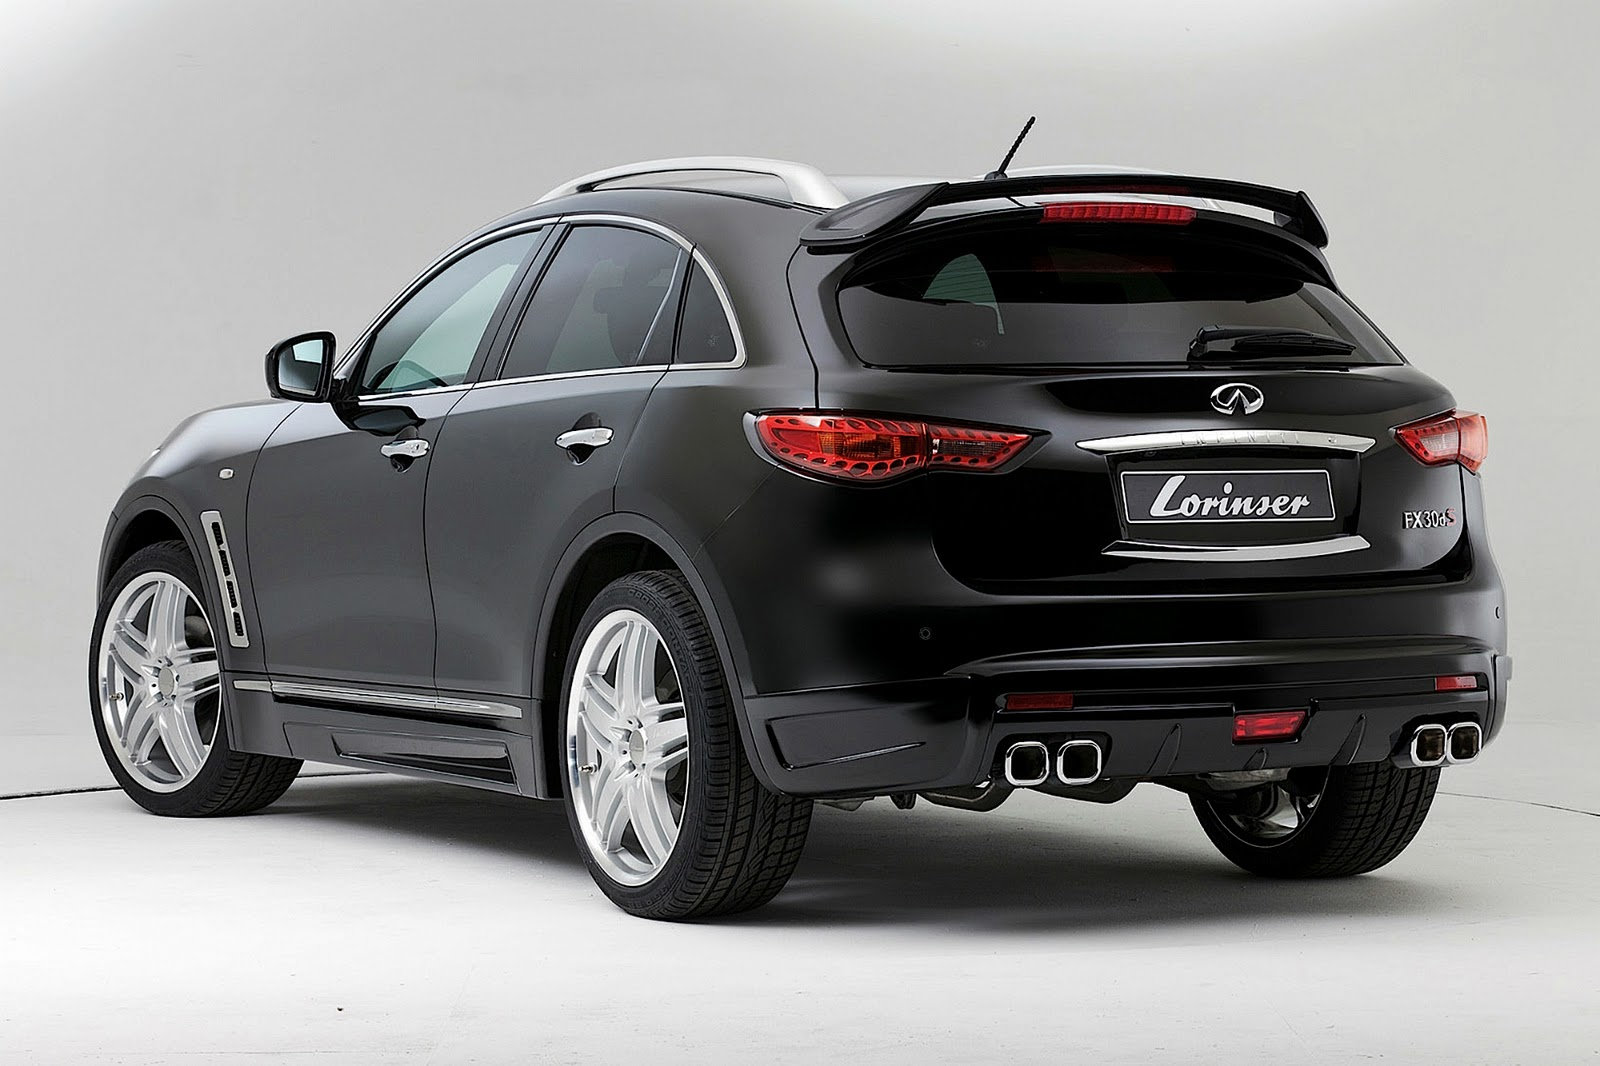 2011 lorinser infiniti fx sport cars and motorcycle news 2011 lorinser infiniti fx vanachro Gallery